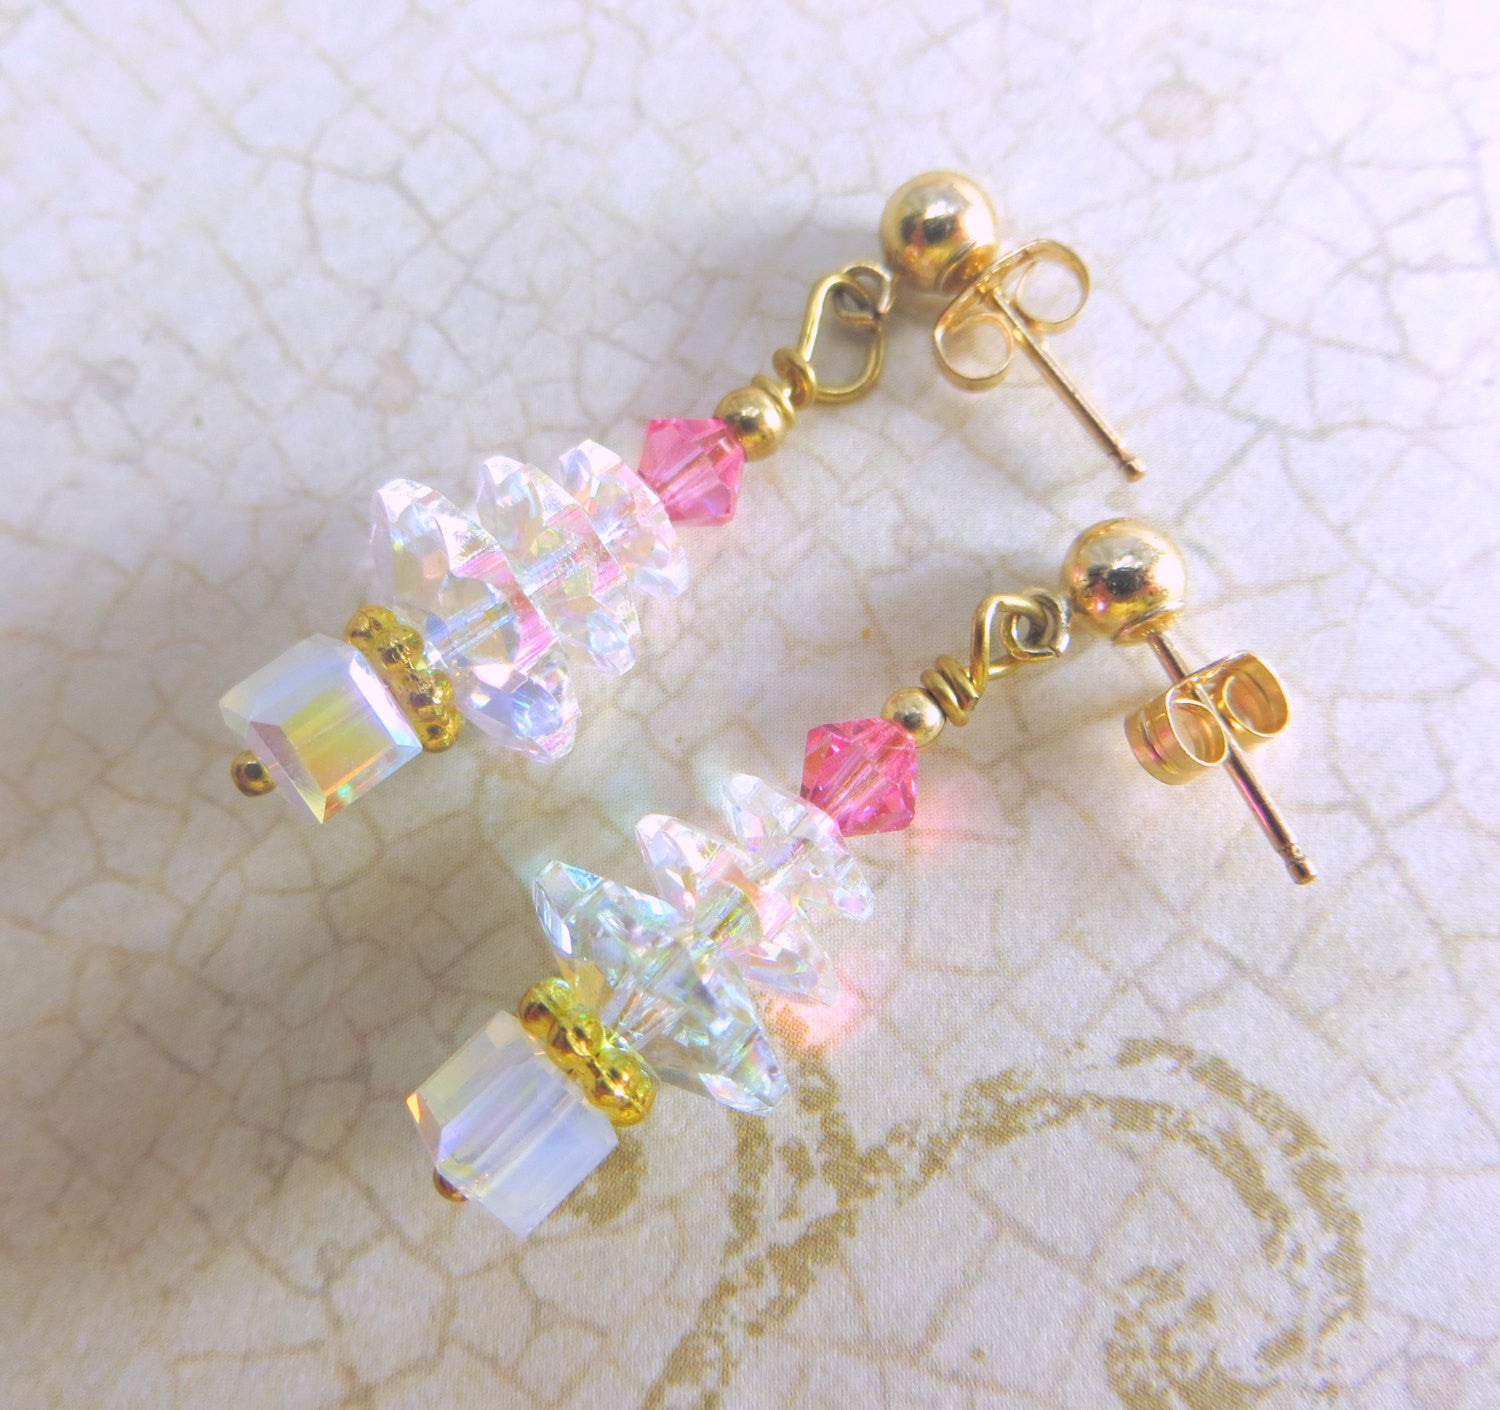 Christmas Tree Earrings in Swarovski Crystal AB and Pink ...